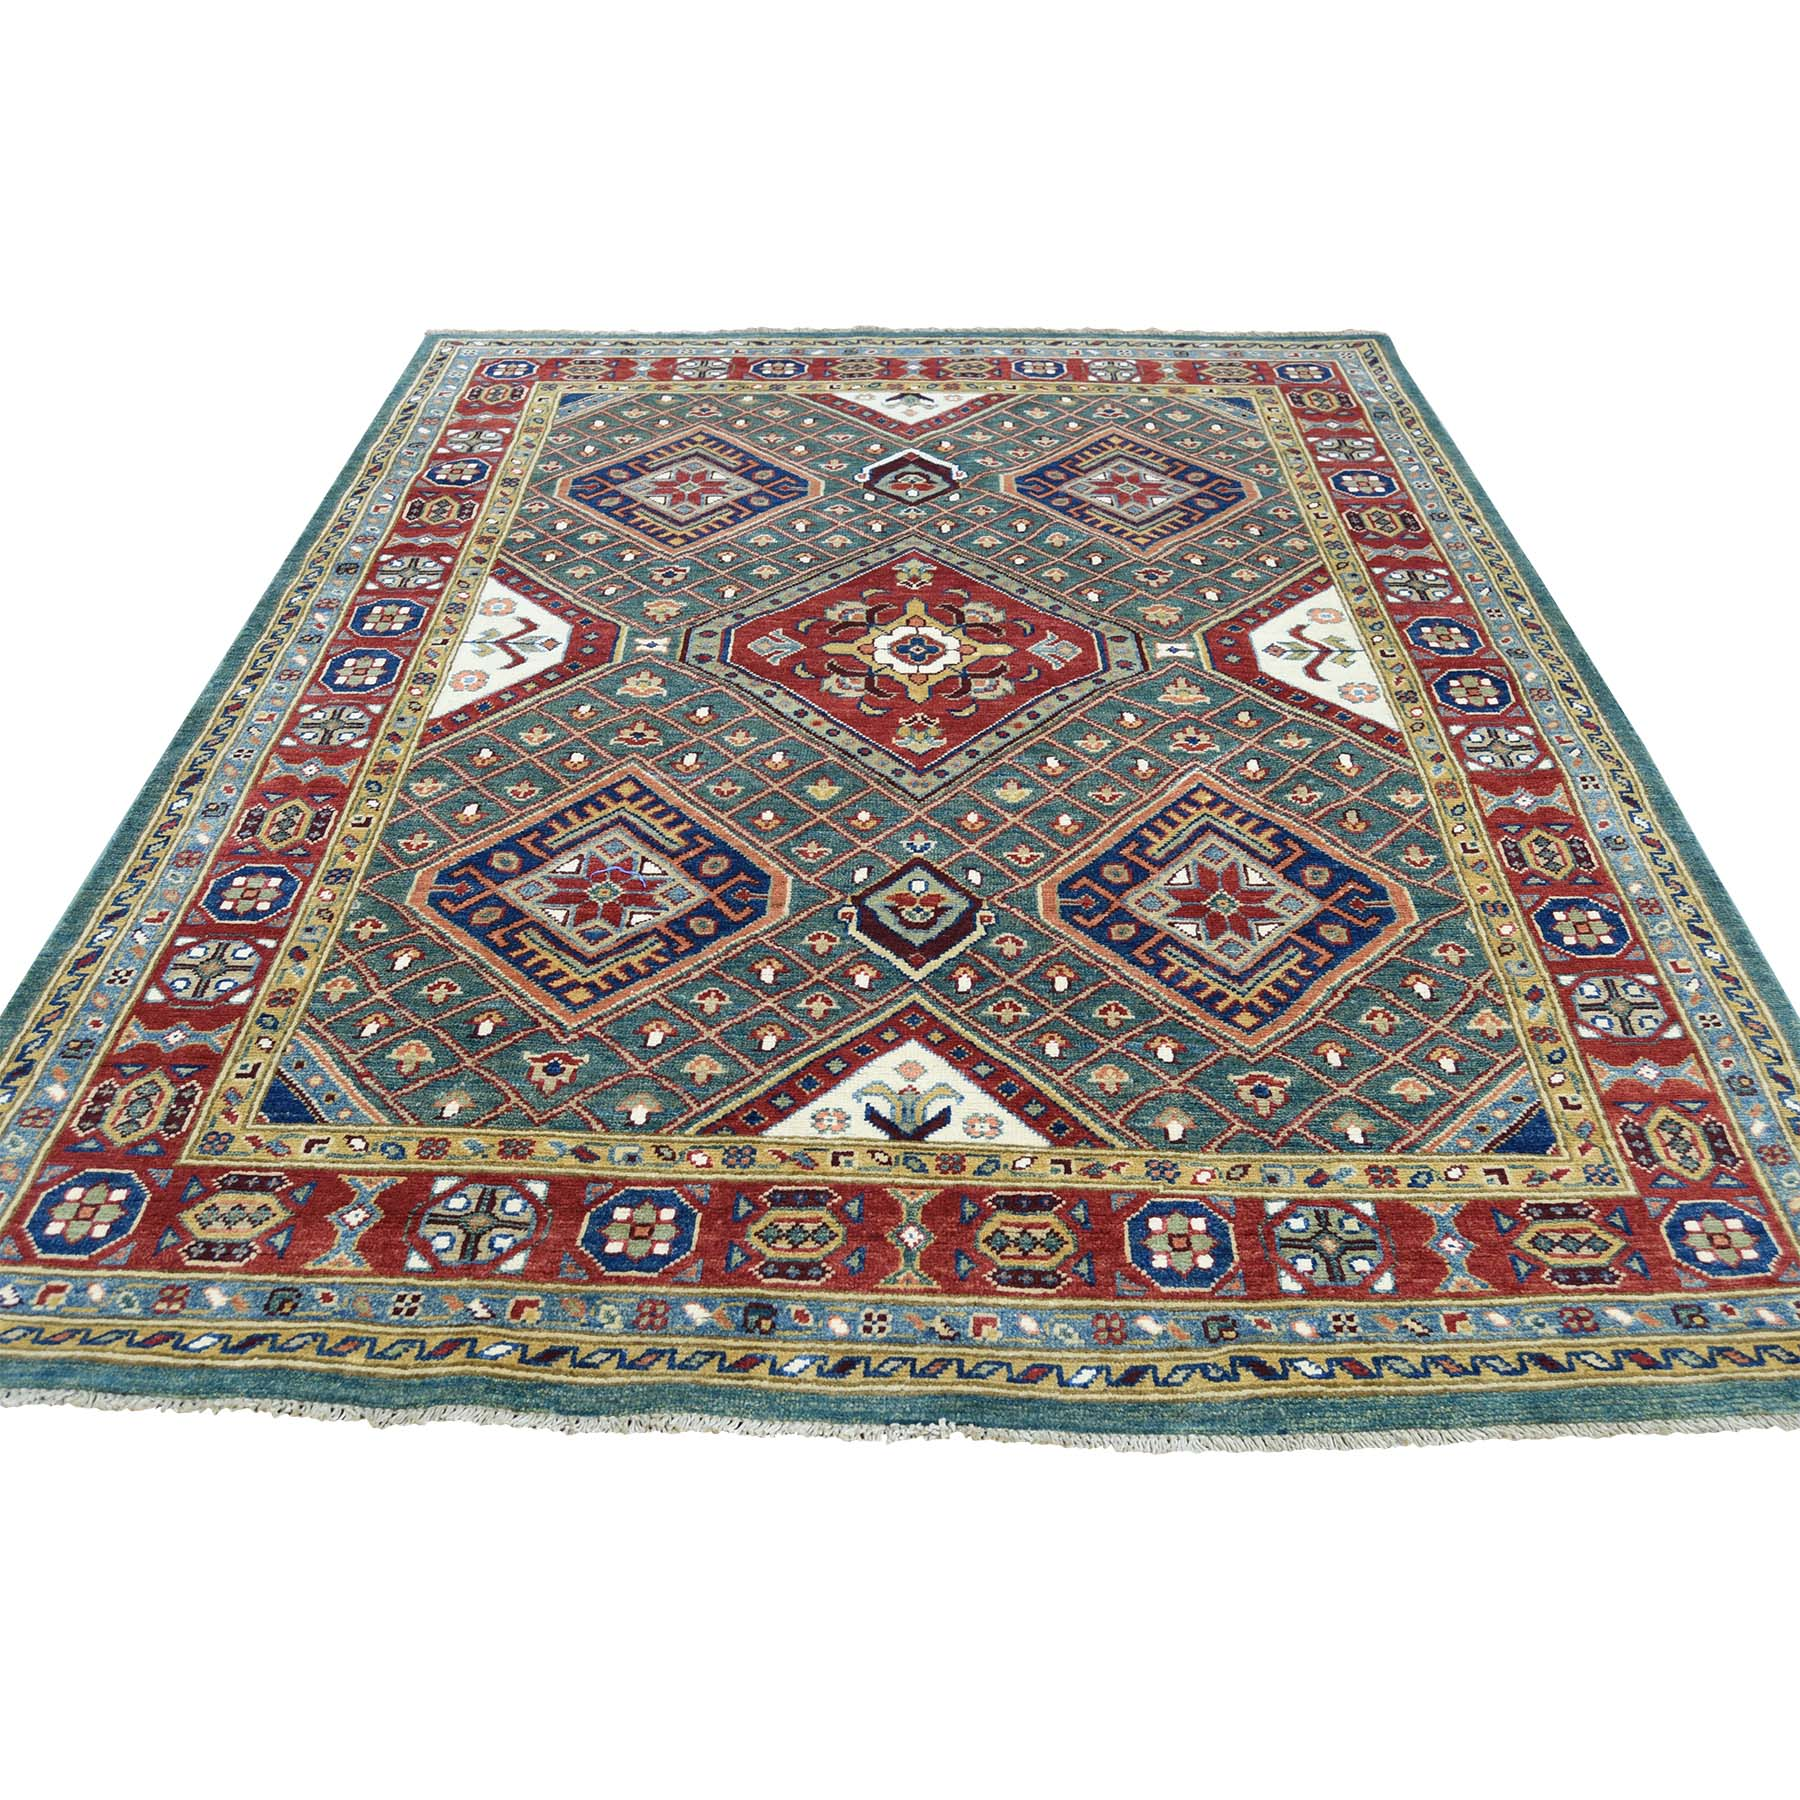 5'x6'6'' Hand Woven Pure Wool Special Kazak Tribal Design Oriental Rug